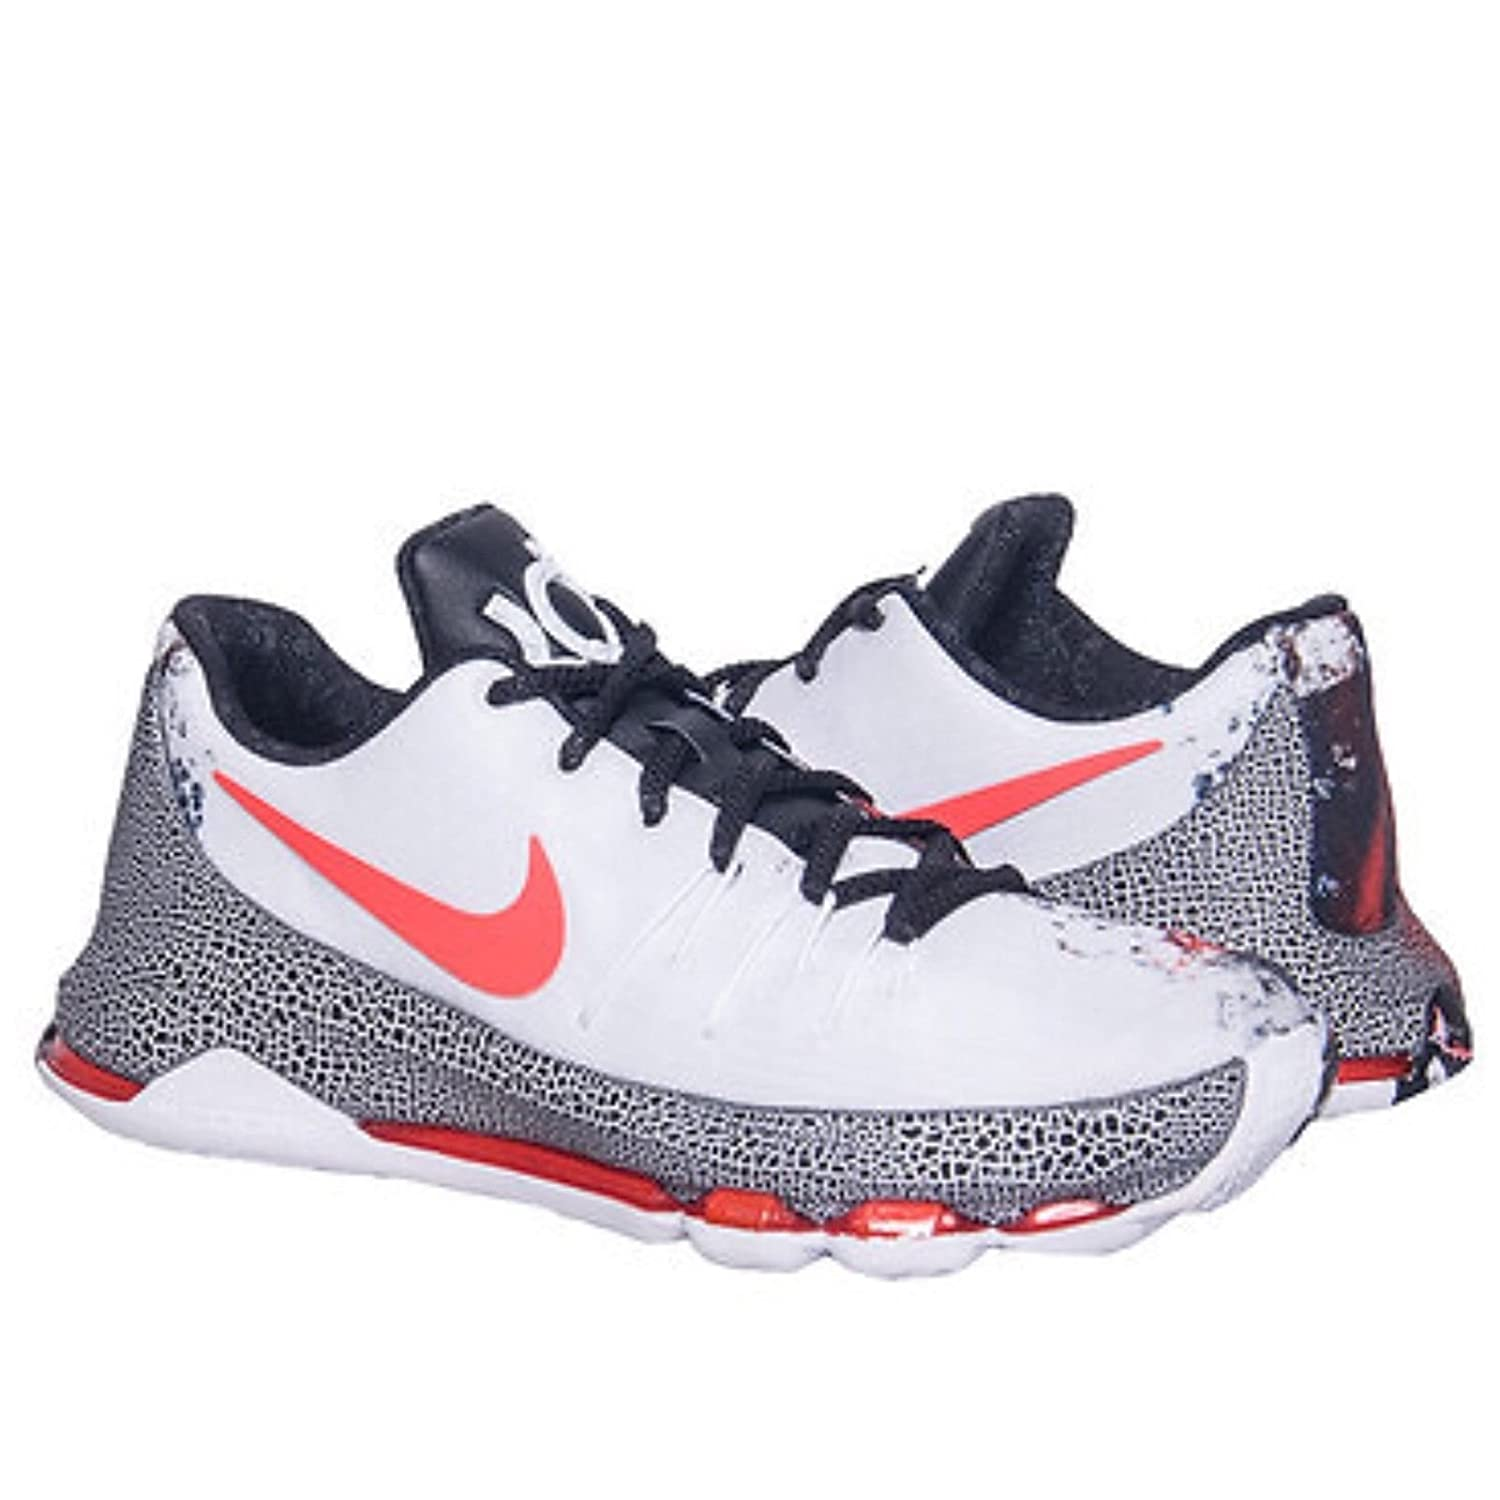 size 40 2121a 5ea50 Amazon.com   Nike 824464-106 KD 8 VIIII Christmas GS White Black Red Kids  Shoes Size 6.5Y   Running